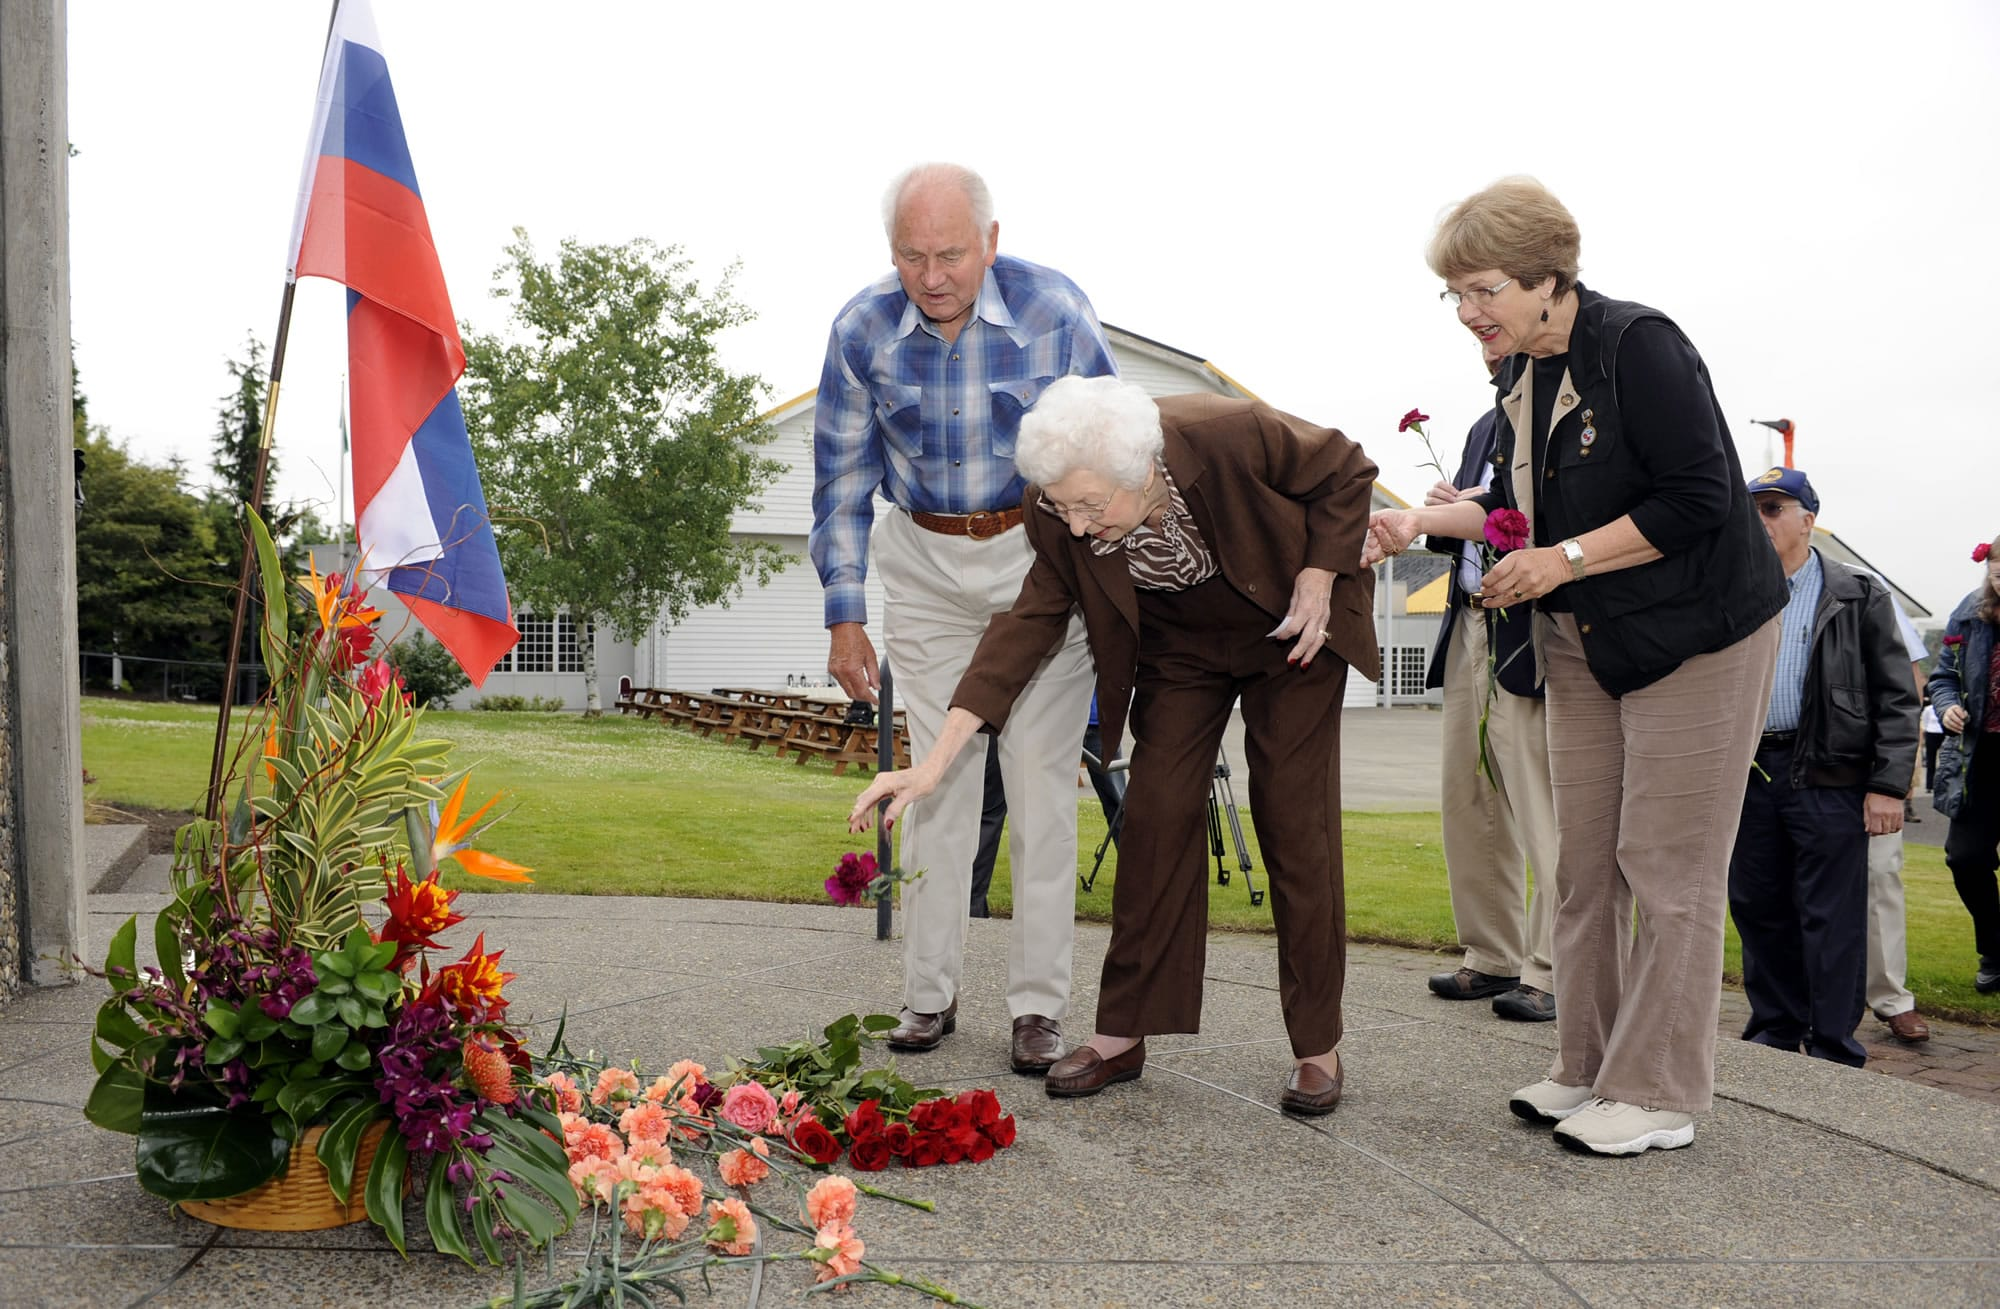 Former State Rep. Val Ogden, center, with Robert Buker, left, and Gayle Rothrock, place flowers at the Transpolar Flight Monument on Wednesday.